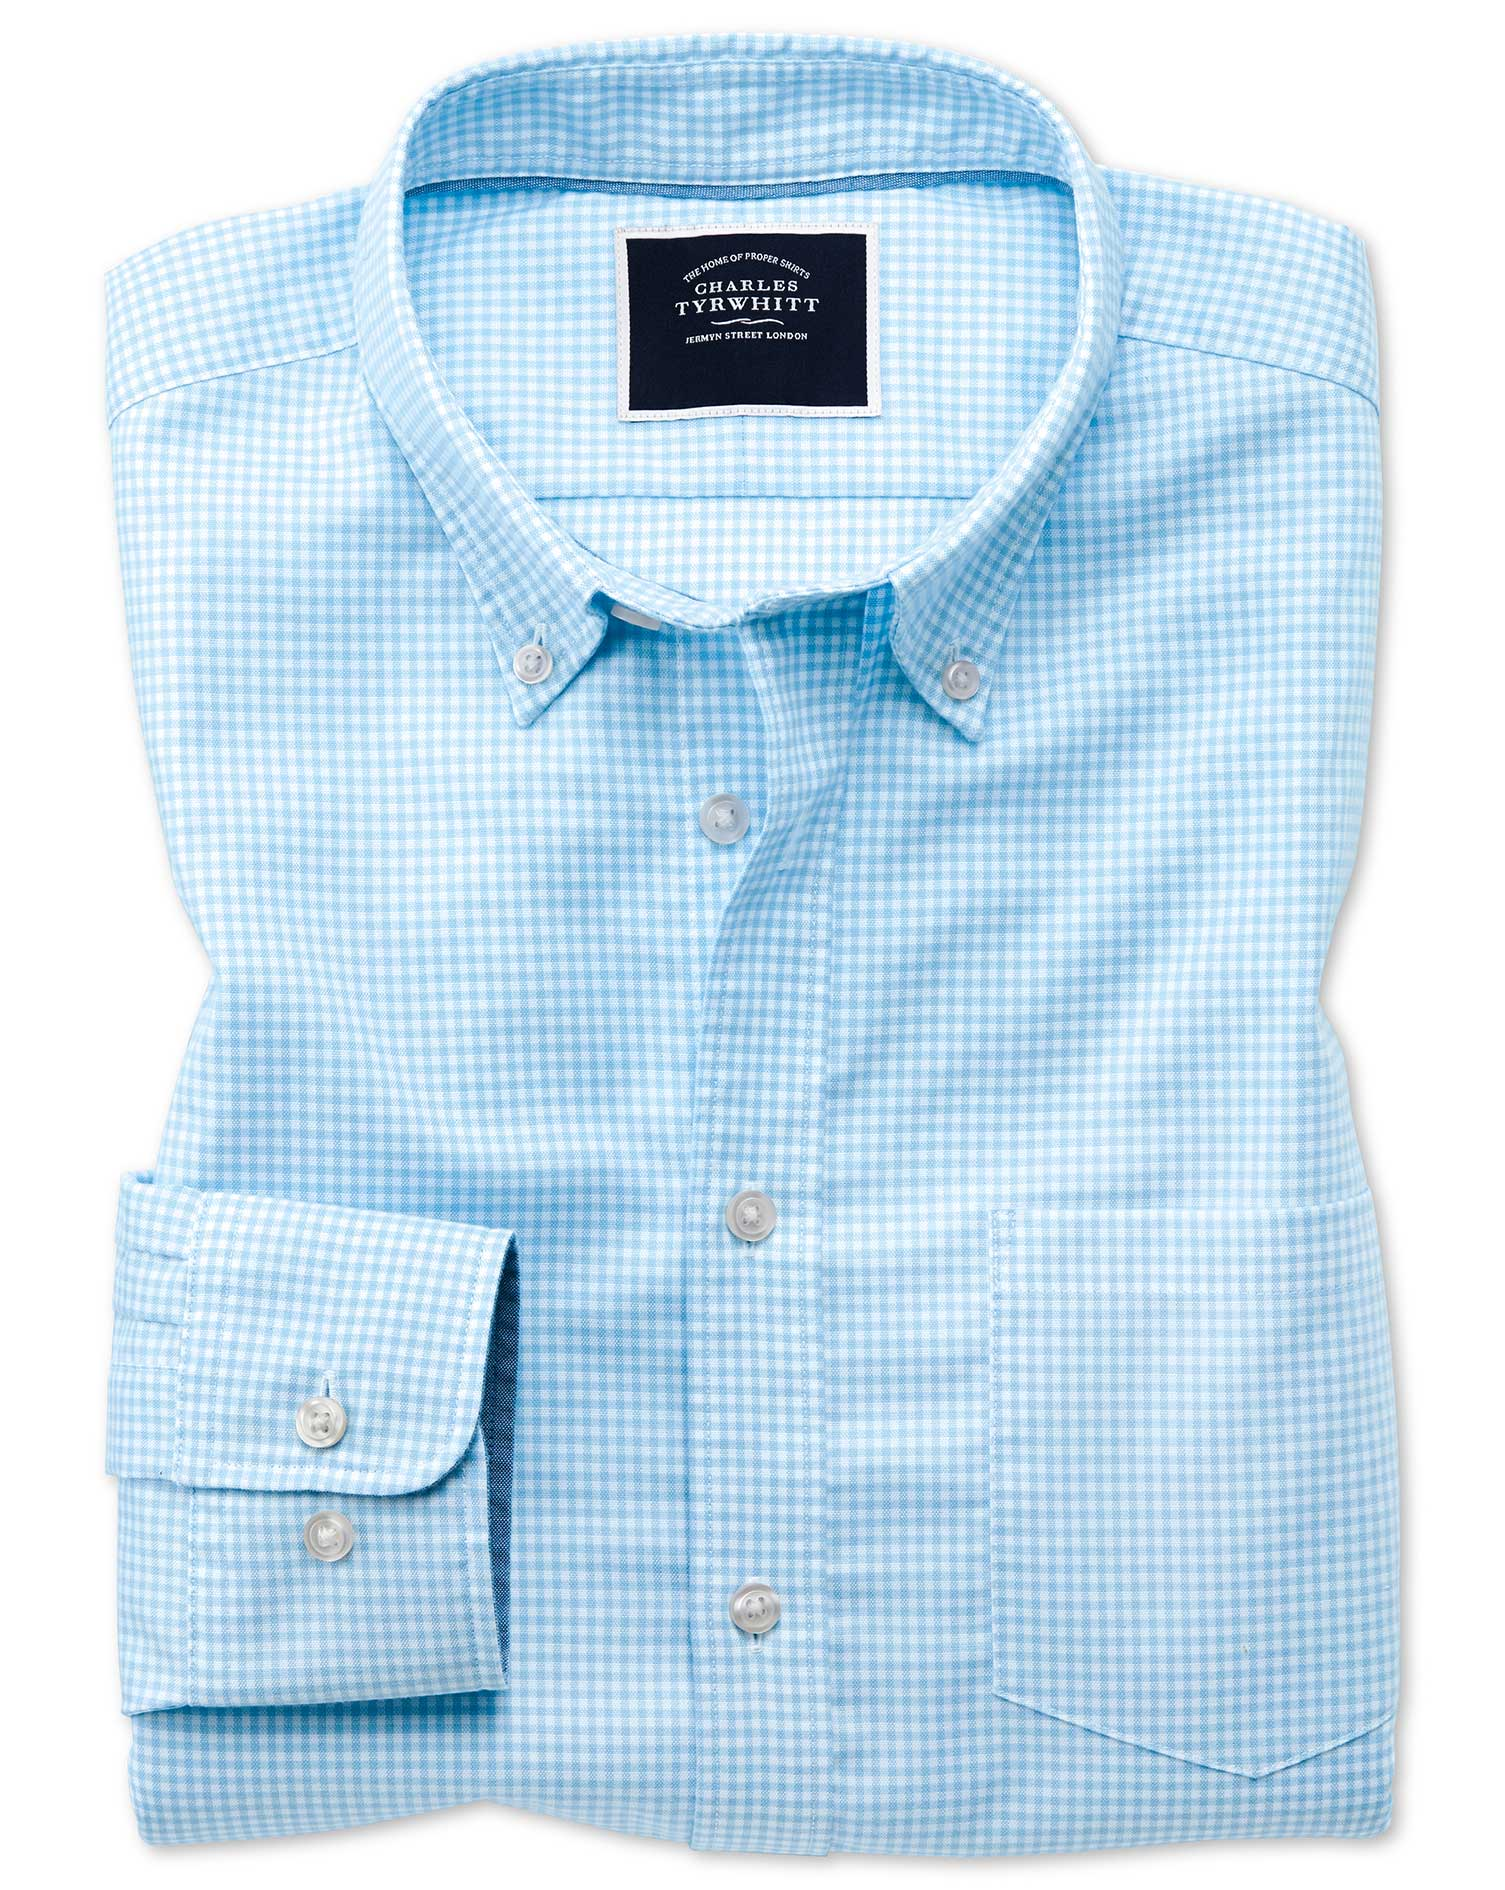 Slim Fit Sky Blue Gingham Soft Washed Non-Iron Stretch Cotton Shirt Single Cuff Size Small by Charle